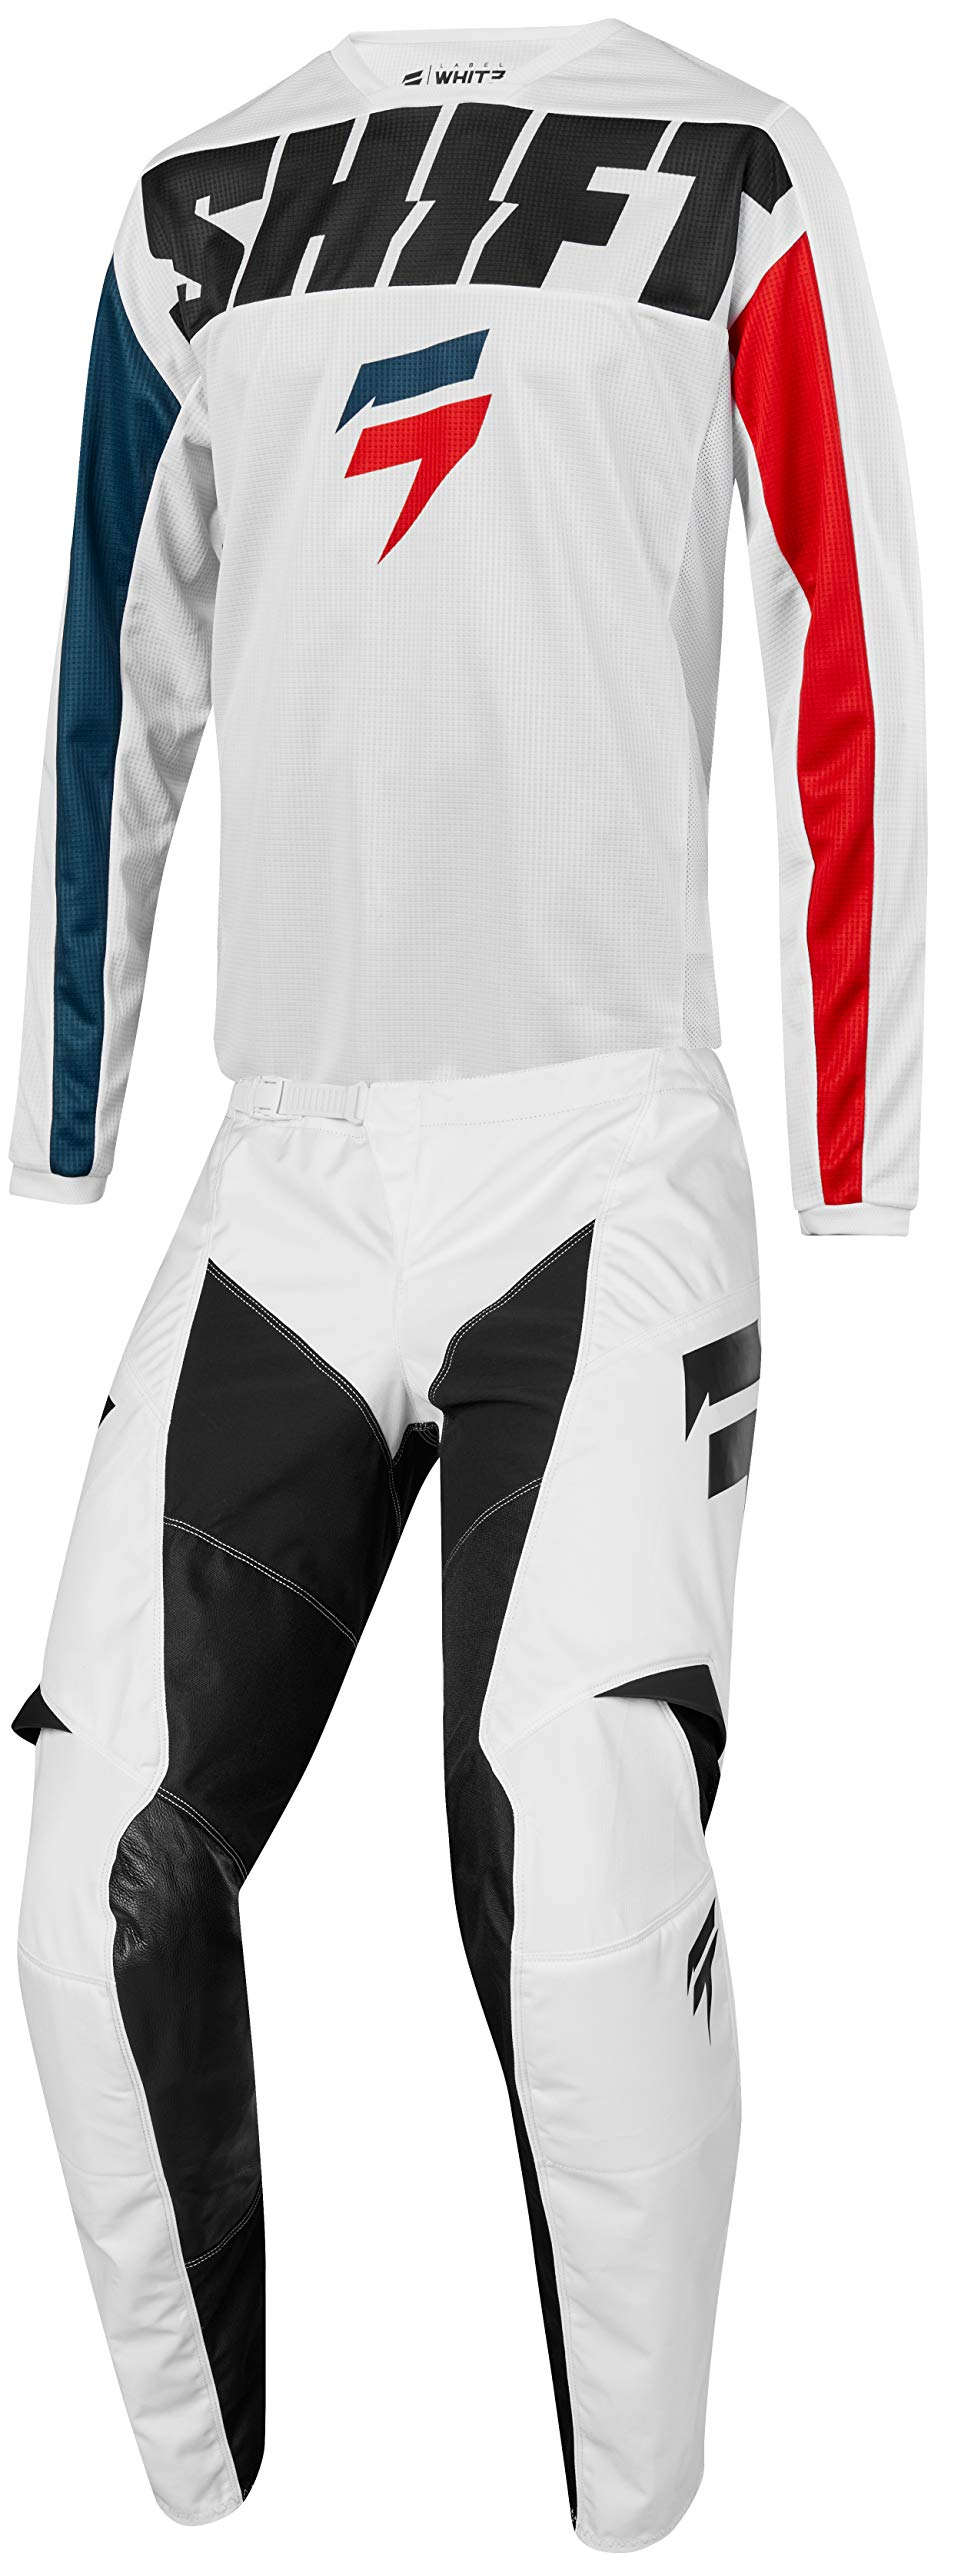 Shift MX 2019 White Label York Motocross Off-Road Dirt Bike Riding Gear Combo (Mens Red & White & Blue Jersey 2X-Large/38W Pant)